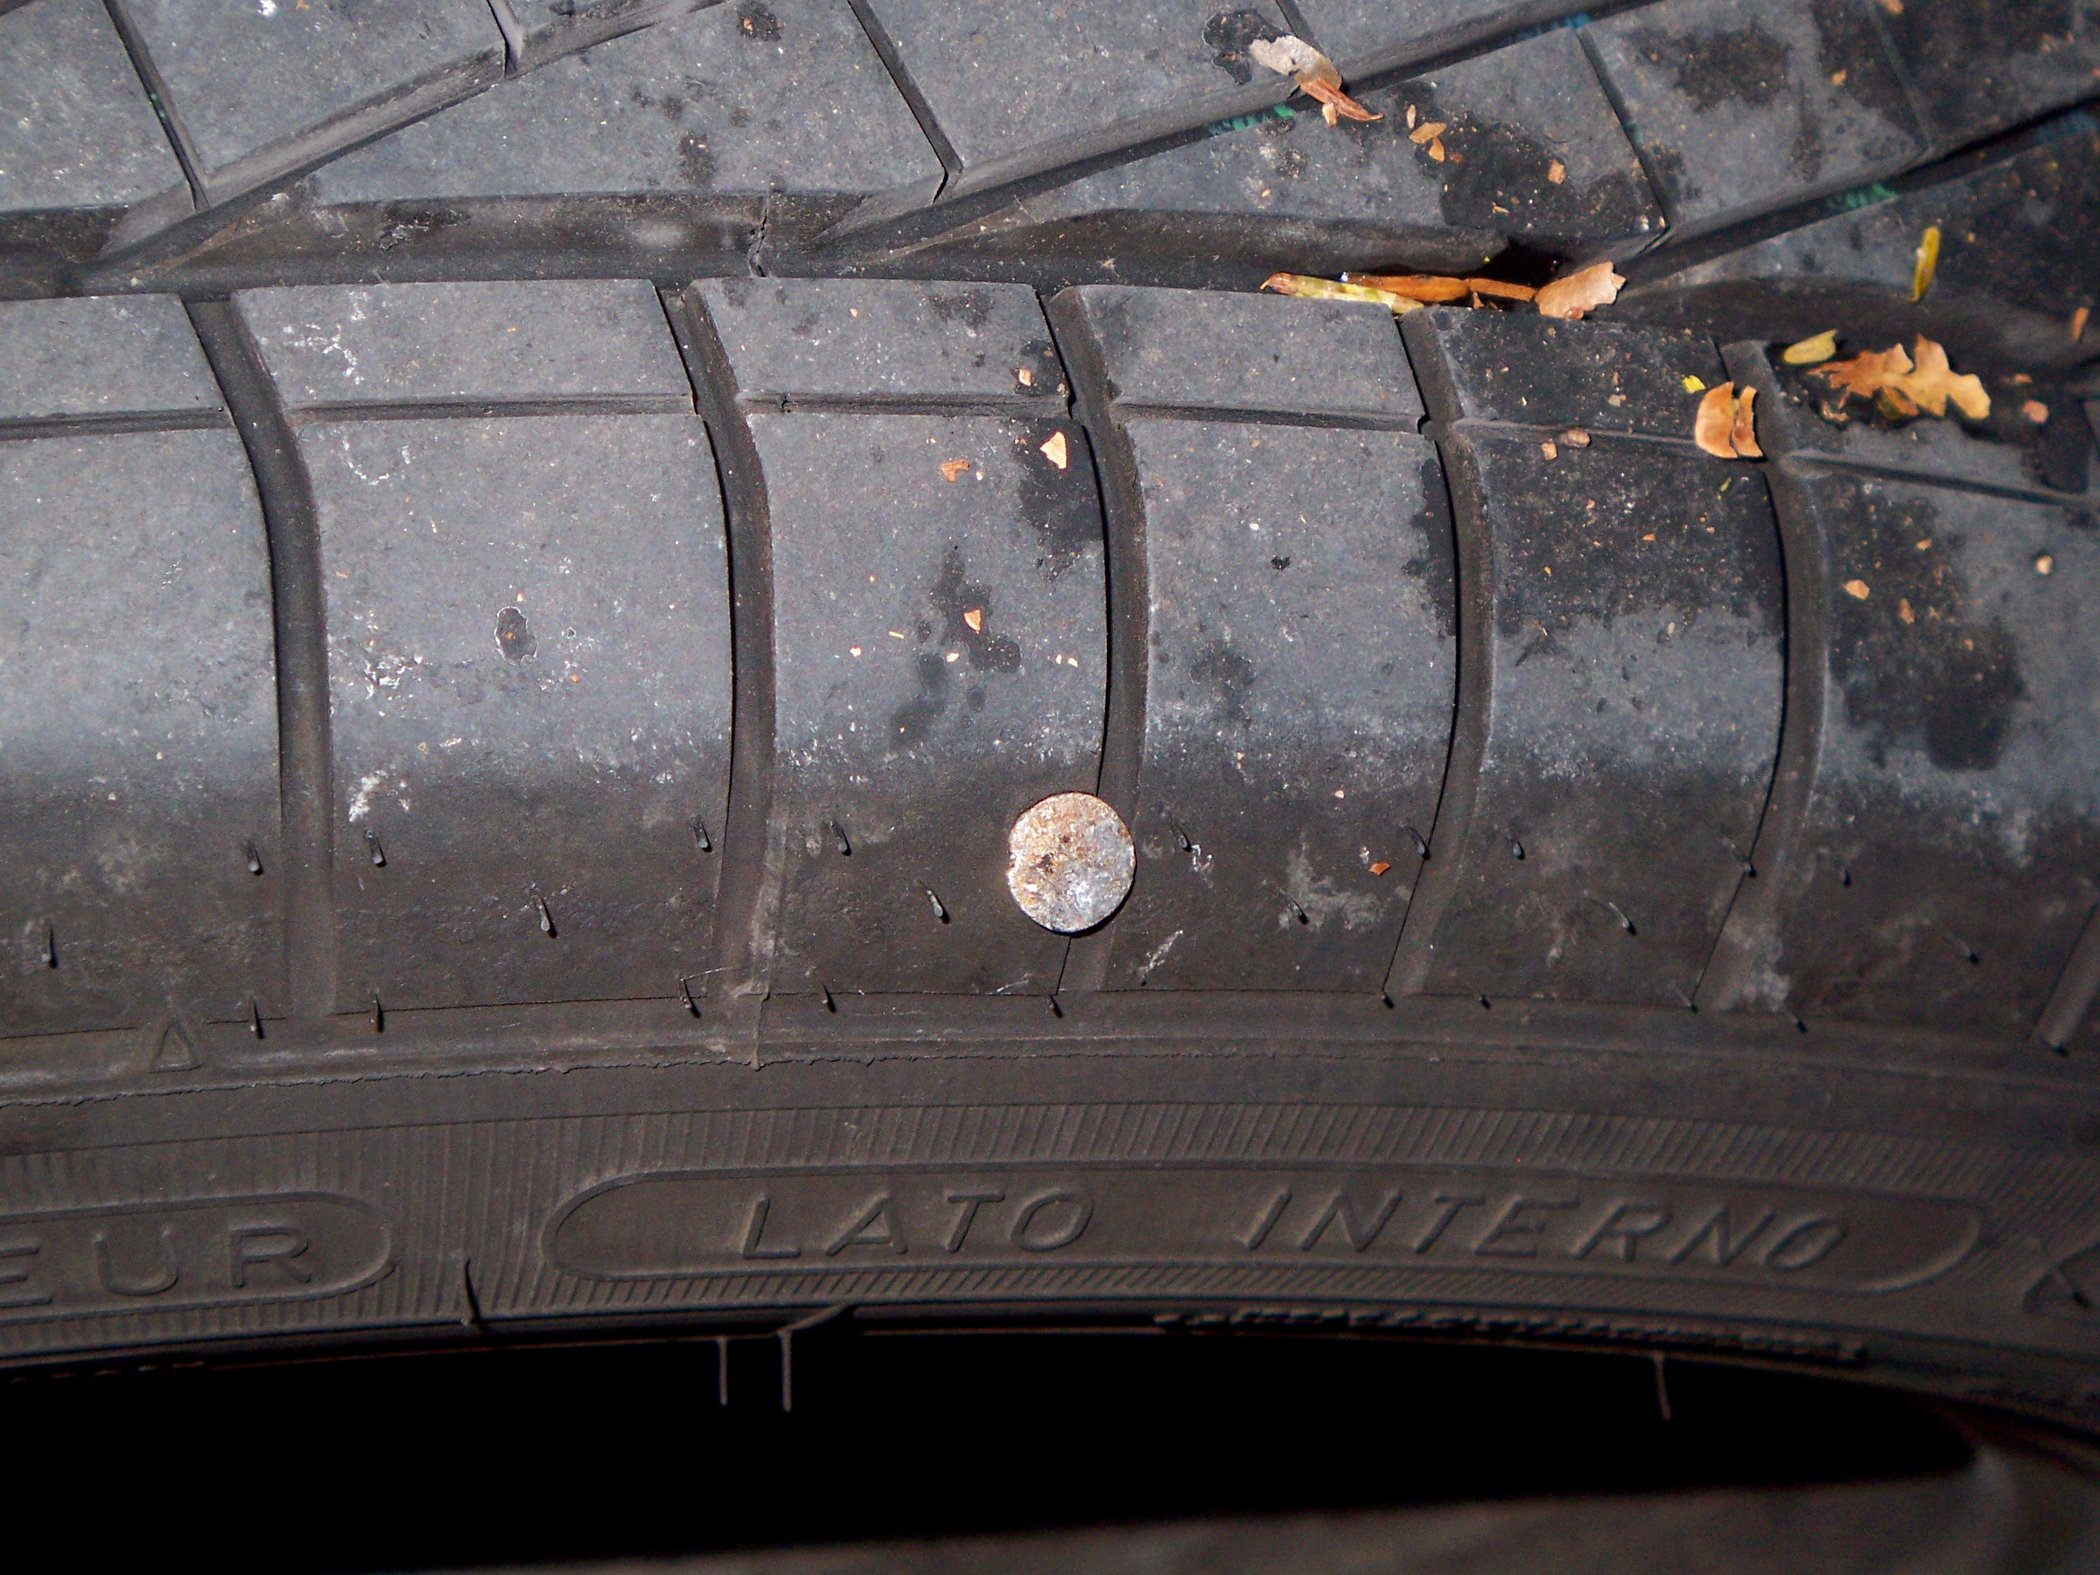 Puncture:  Usually caused by road debris